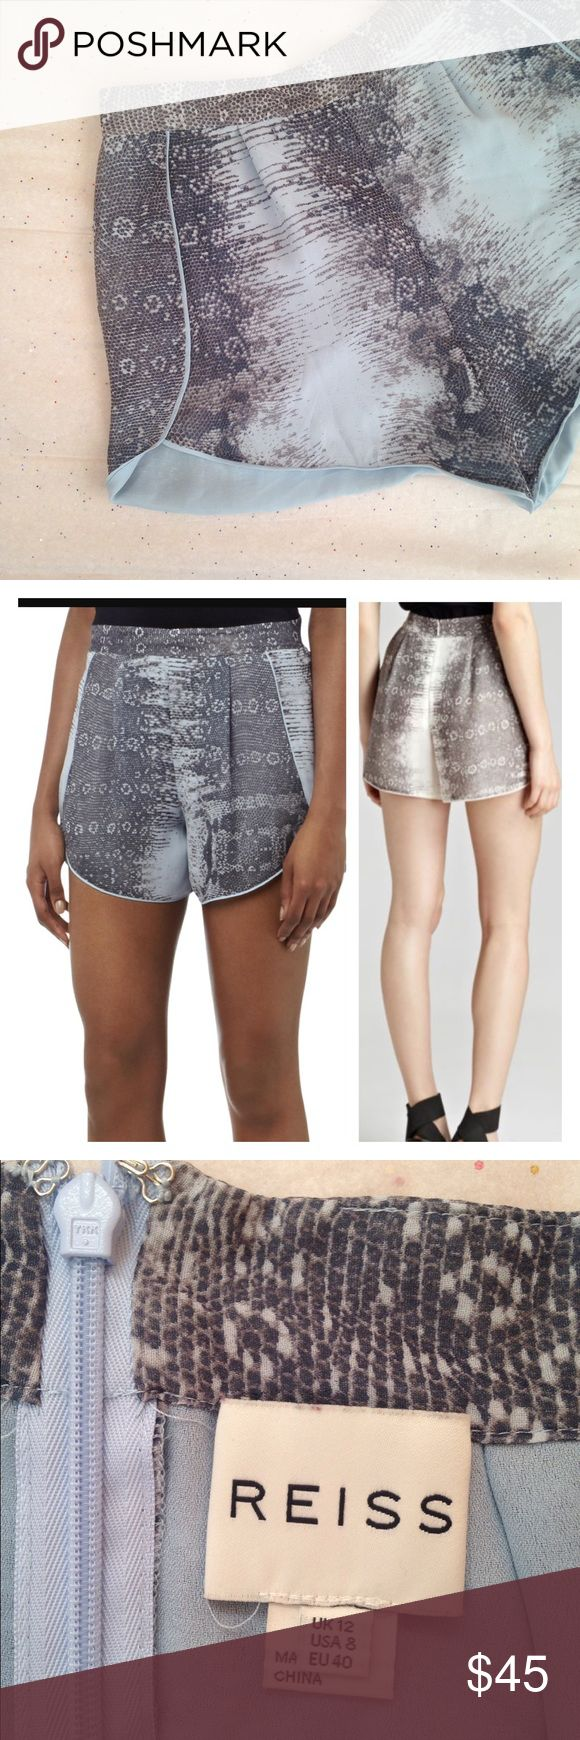 """{JUST IN} silk snake print shorts Reiss Morgan silk snake print high waisted shorts with curved dolphin hem. Gray/sky blue. Pre-loved, excellent condition - no defects.  size 8/UK 12 - lying flat across, waist 16"""", length 11"""", inseam 3.5"""", rise 12"""" (high waist).   ✅offers - 50% + will be politely declined.       ✅questions if unsure.  ❌NO trades - please do not ask.  ❌NO modeling.   Thanks for stopping by 💕 Reiss Shorts"""